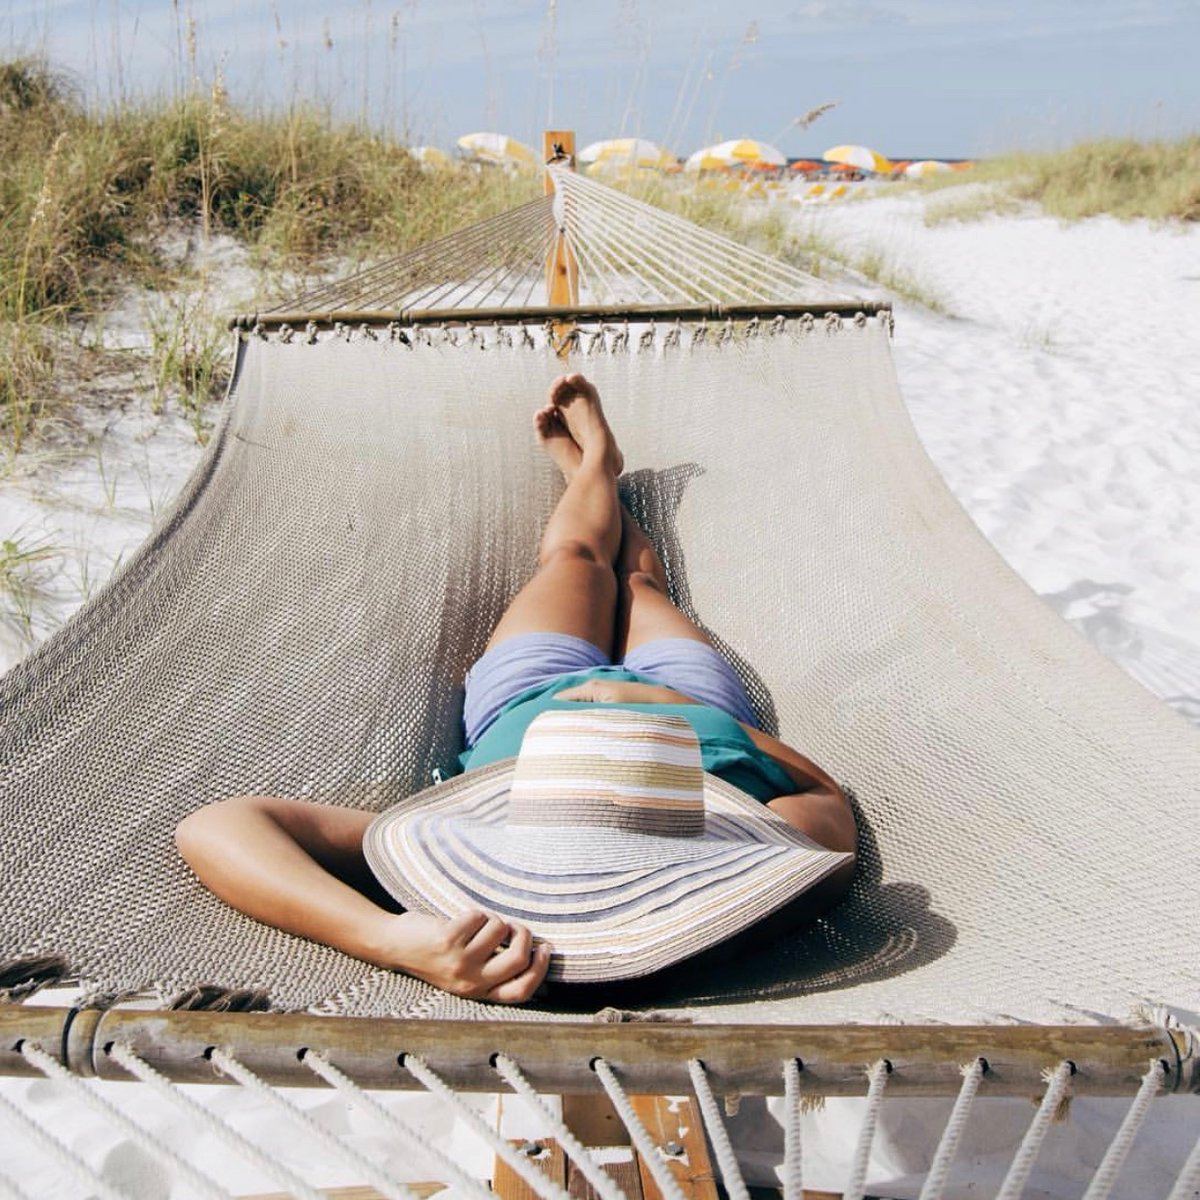 It's #NationalHatDay, and you'll find us under this one, taking a mid-afternoon nap at the @SandpearlResort on Clearwater Beach! 😴☀️🌴 #SandpearlResort #ClearwaterBeach